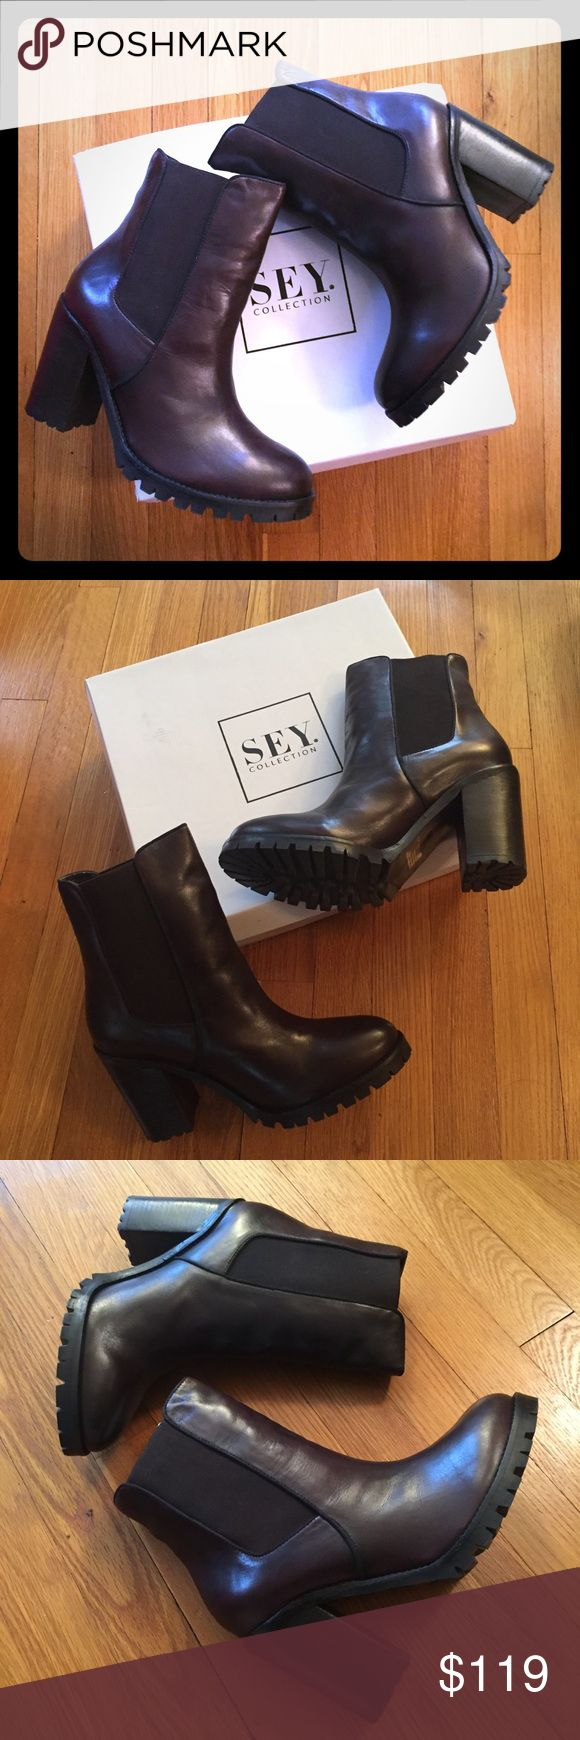 """NIB Seychelles Dark Brown Leather Platform Boots I bought these earlier in the year, and convinced myself they weren't too tight. I'm facing reality and letting them go. They are a US 10 but could likely fit a size 9. Measurements are 3.75"""" across, 9"""" Tie to heel, 6"""" shaft, 3.75"""" heel including a .5"""" lug sole platform. Genuine dark brown leather upper and lining. Ships in original box and packaging. Leather smells amazing when you take them out of the box! Please note these are unworn, but…"""